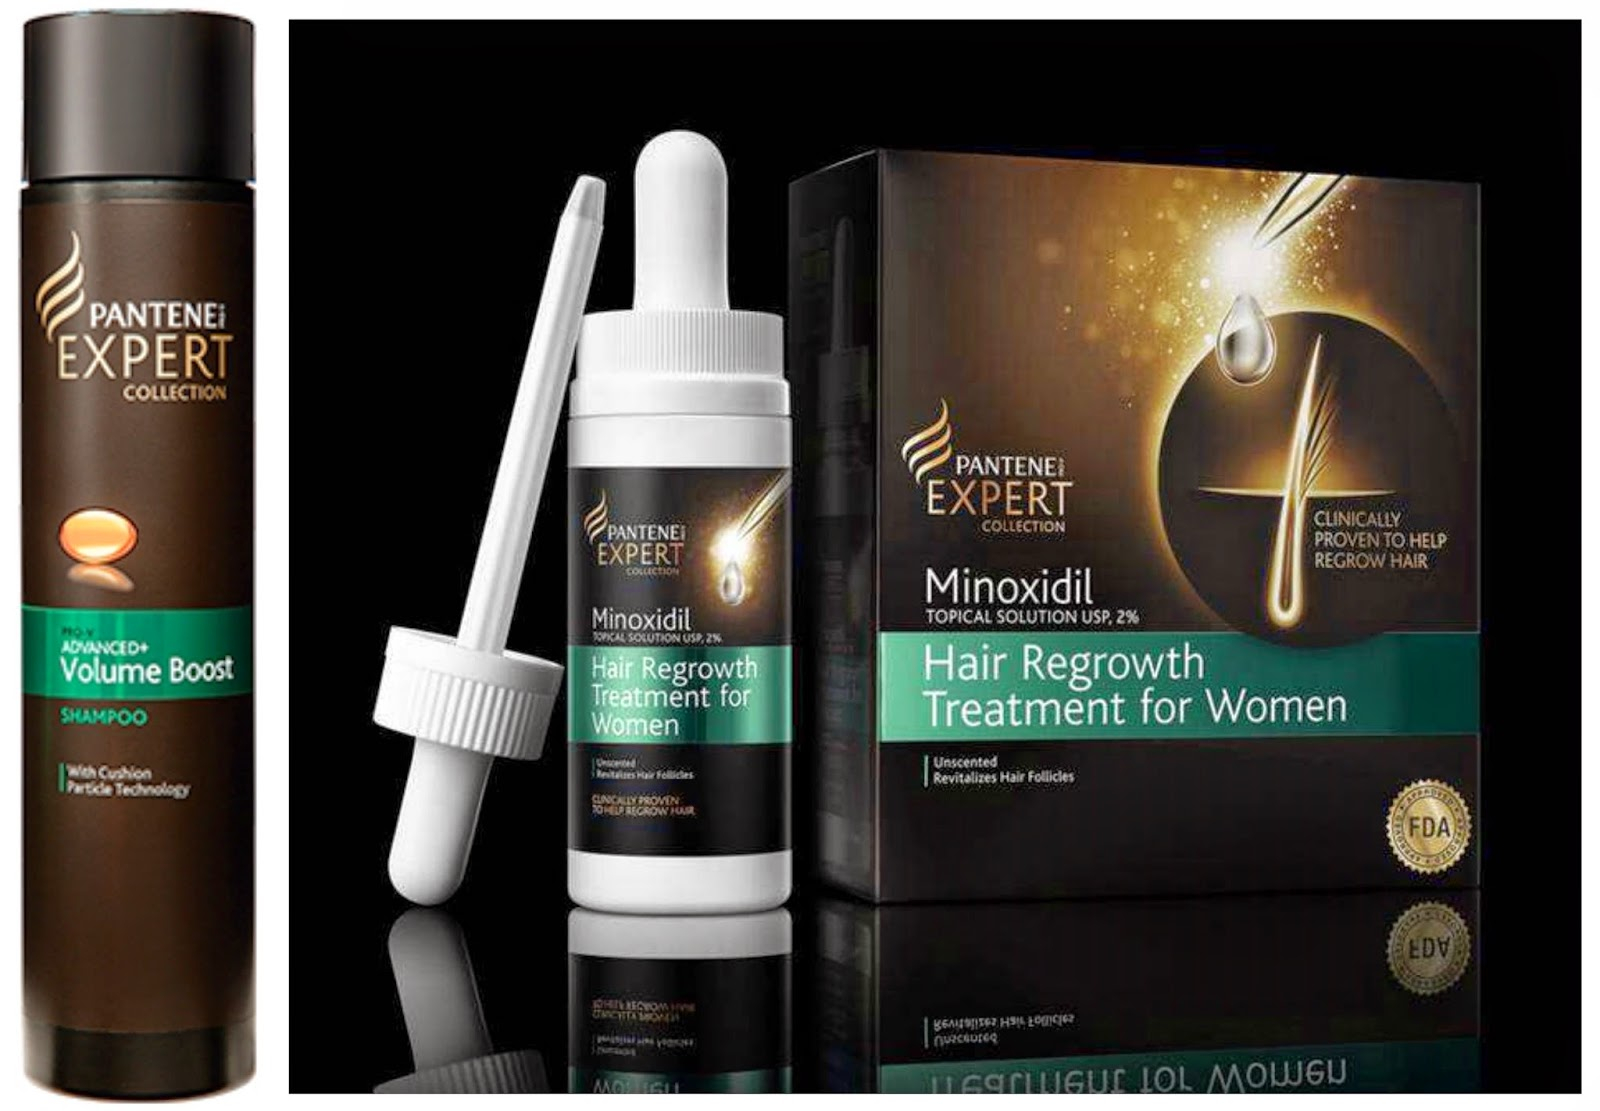 new product alert: pantene launches expert collection hair